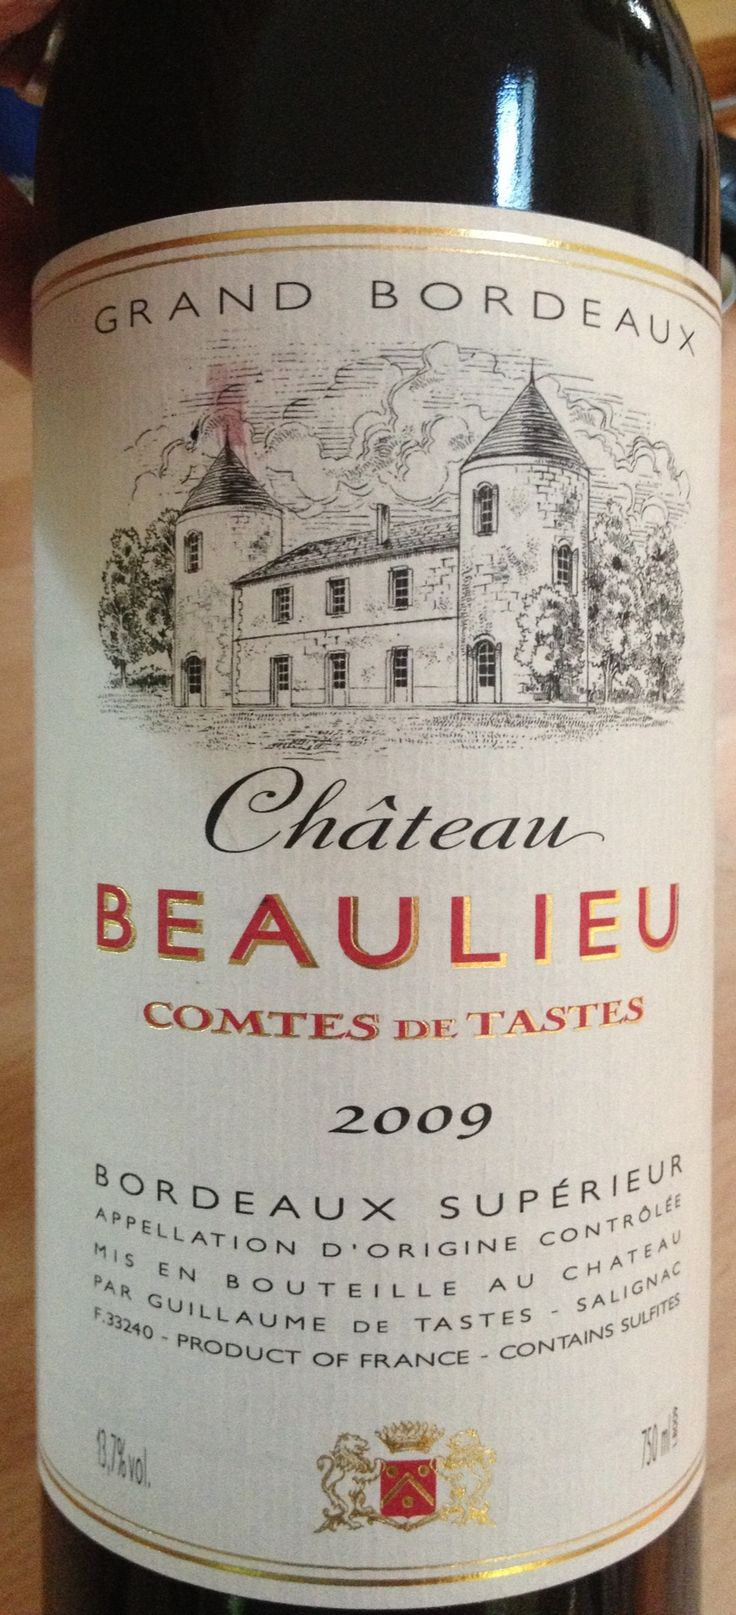 Ch. Beaulieu 09 from Thos Peatling, Bury St Edmunds. £15.11 - opaque deep purple. Subtle aromas. Already integrated, but light, flavours.